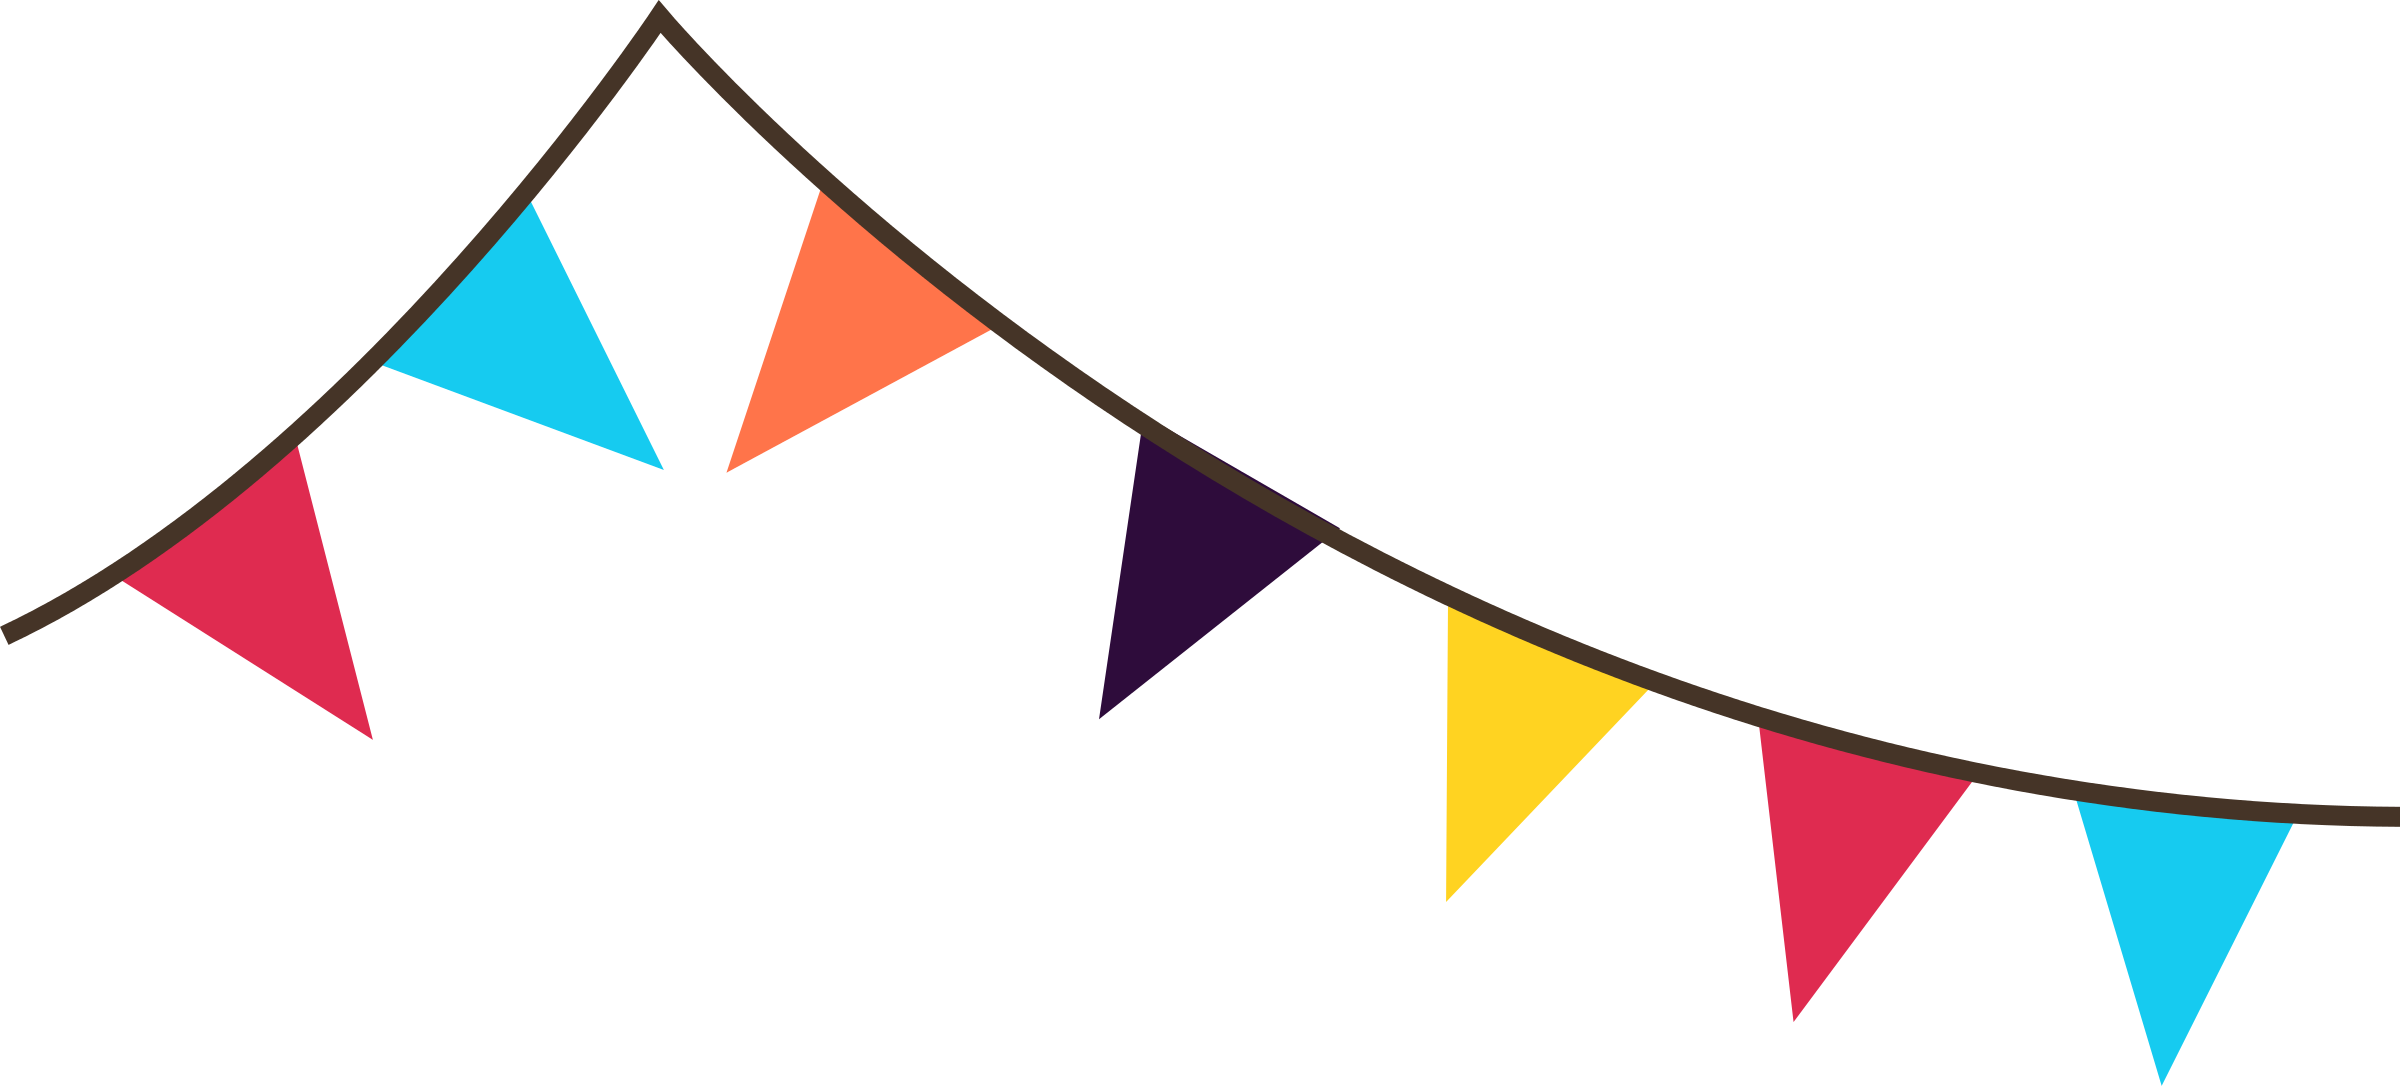 fiesta banner clipart triangle